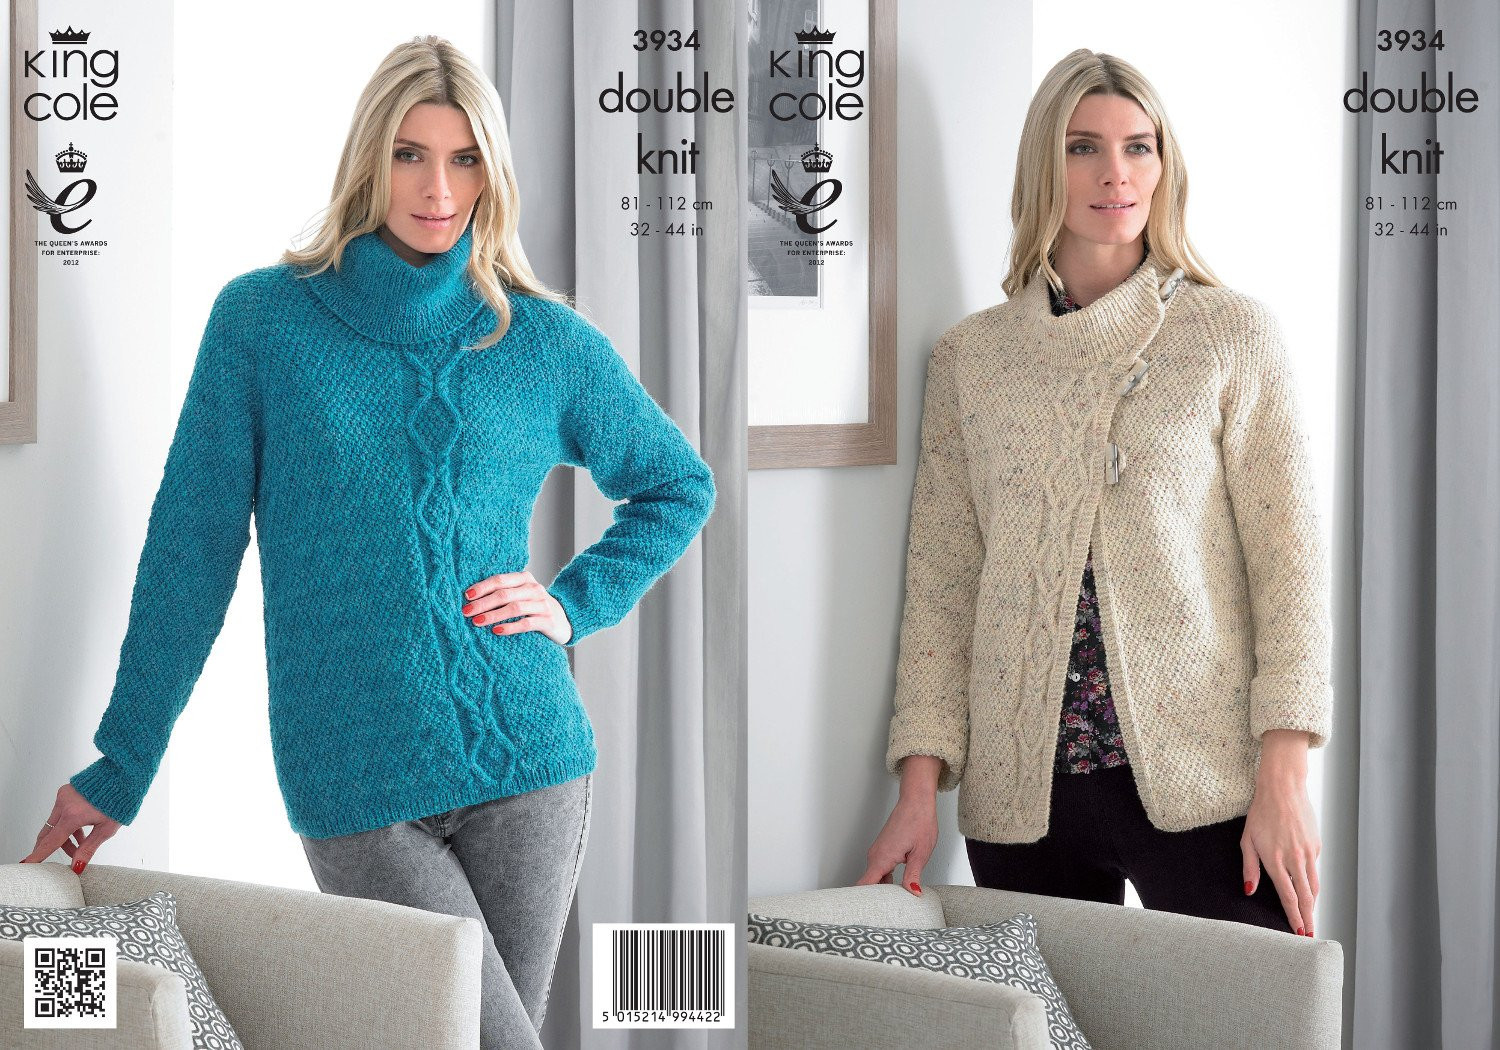 Awesome Cable Sweater Knit Pattern Cable Knit Sweater Pattern Of Luxury Easy Sweater Knitting Patterns Cable Knit Sweater Pattern